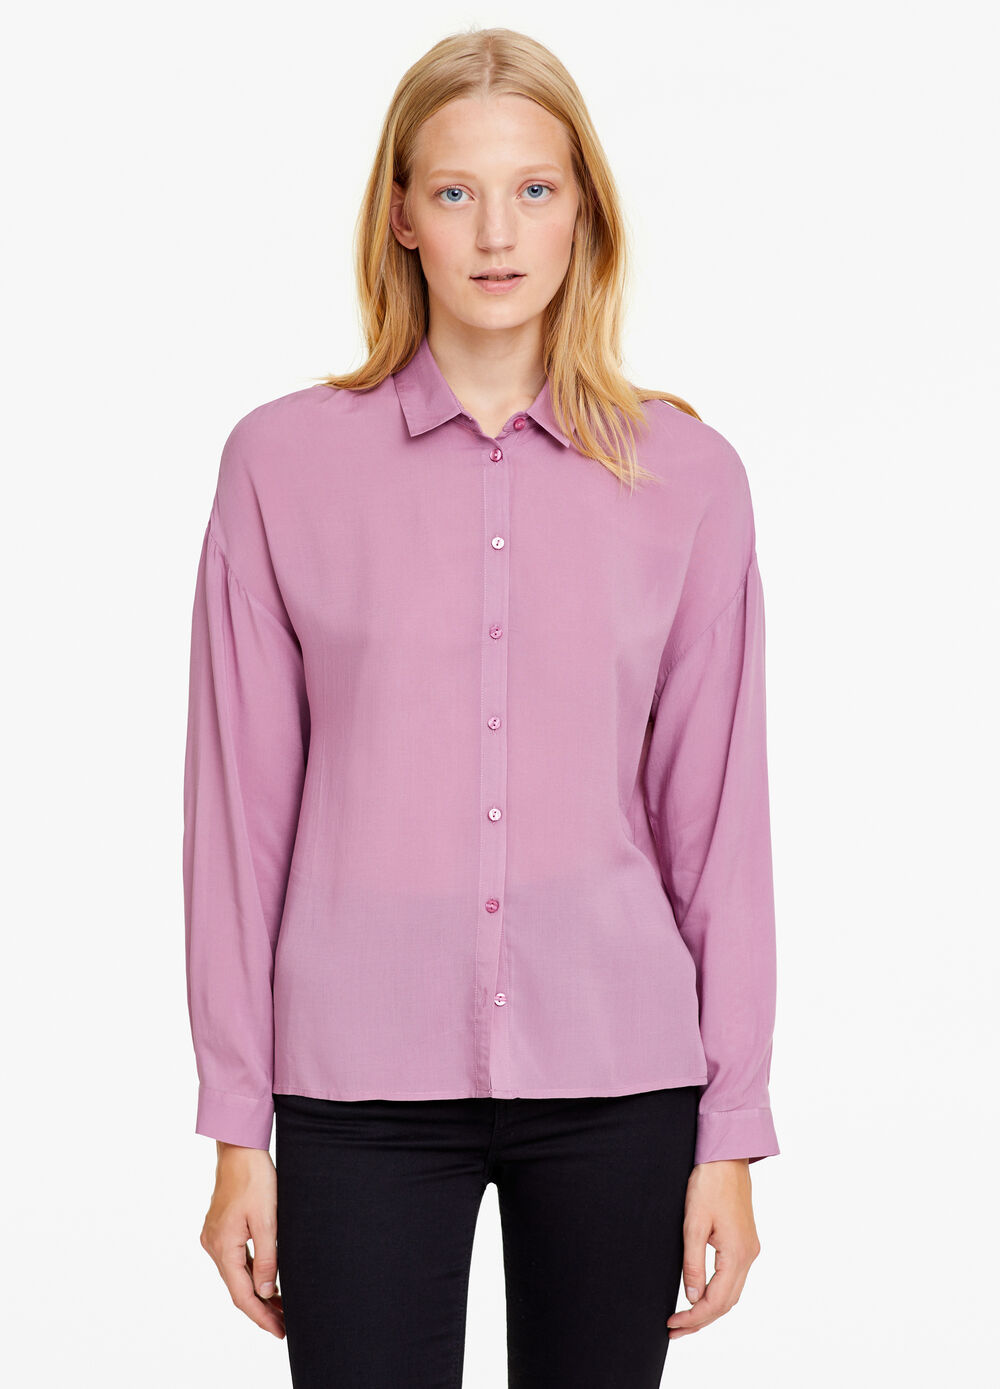 Blouse in 100% viscose with buttons